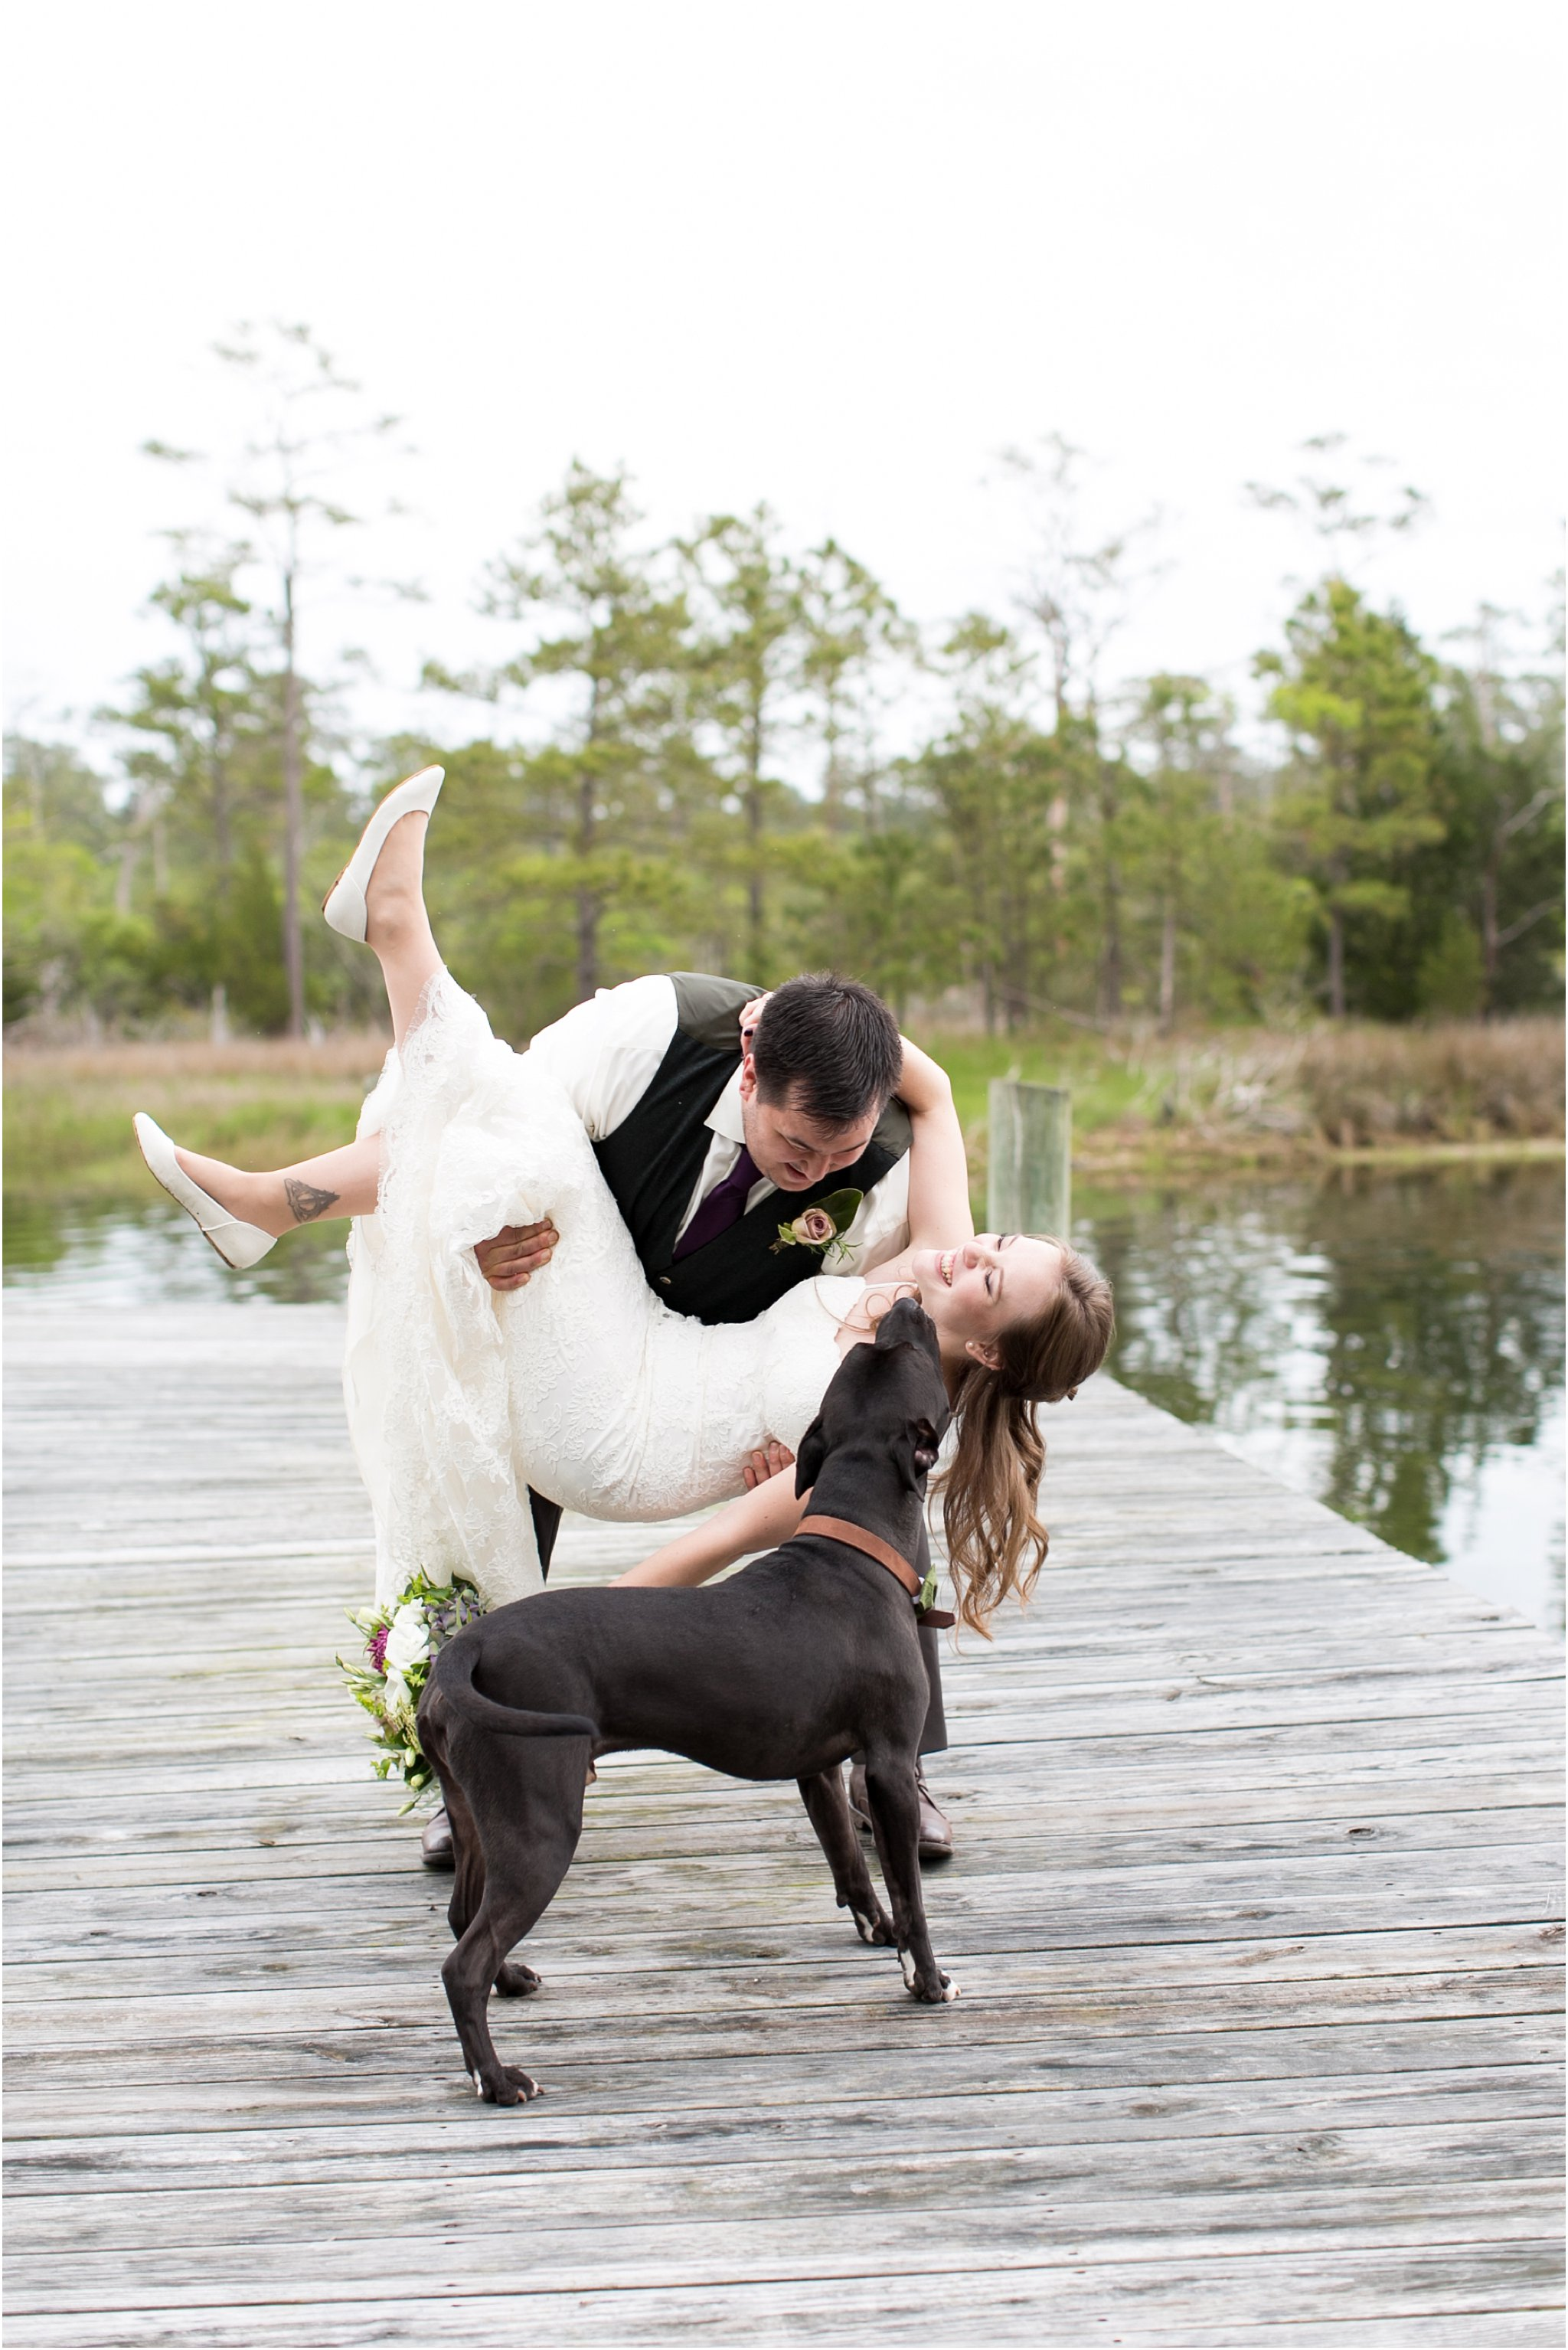 jessica_ryan_photography_virginia_virginiabeachwedding_bayislandvirginiabeach_backyardwedding_waterfrontwedding_intimatewedding_vintagewedding_1566